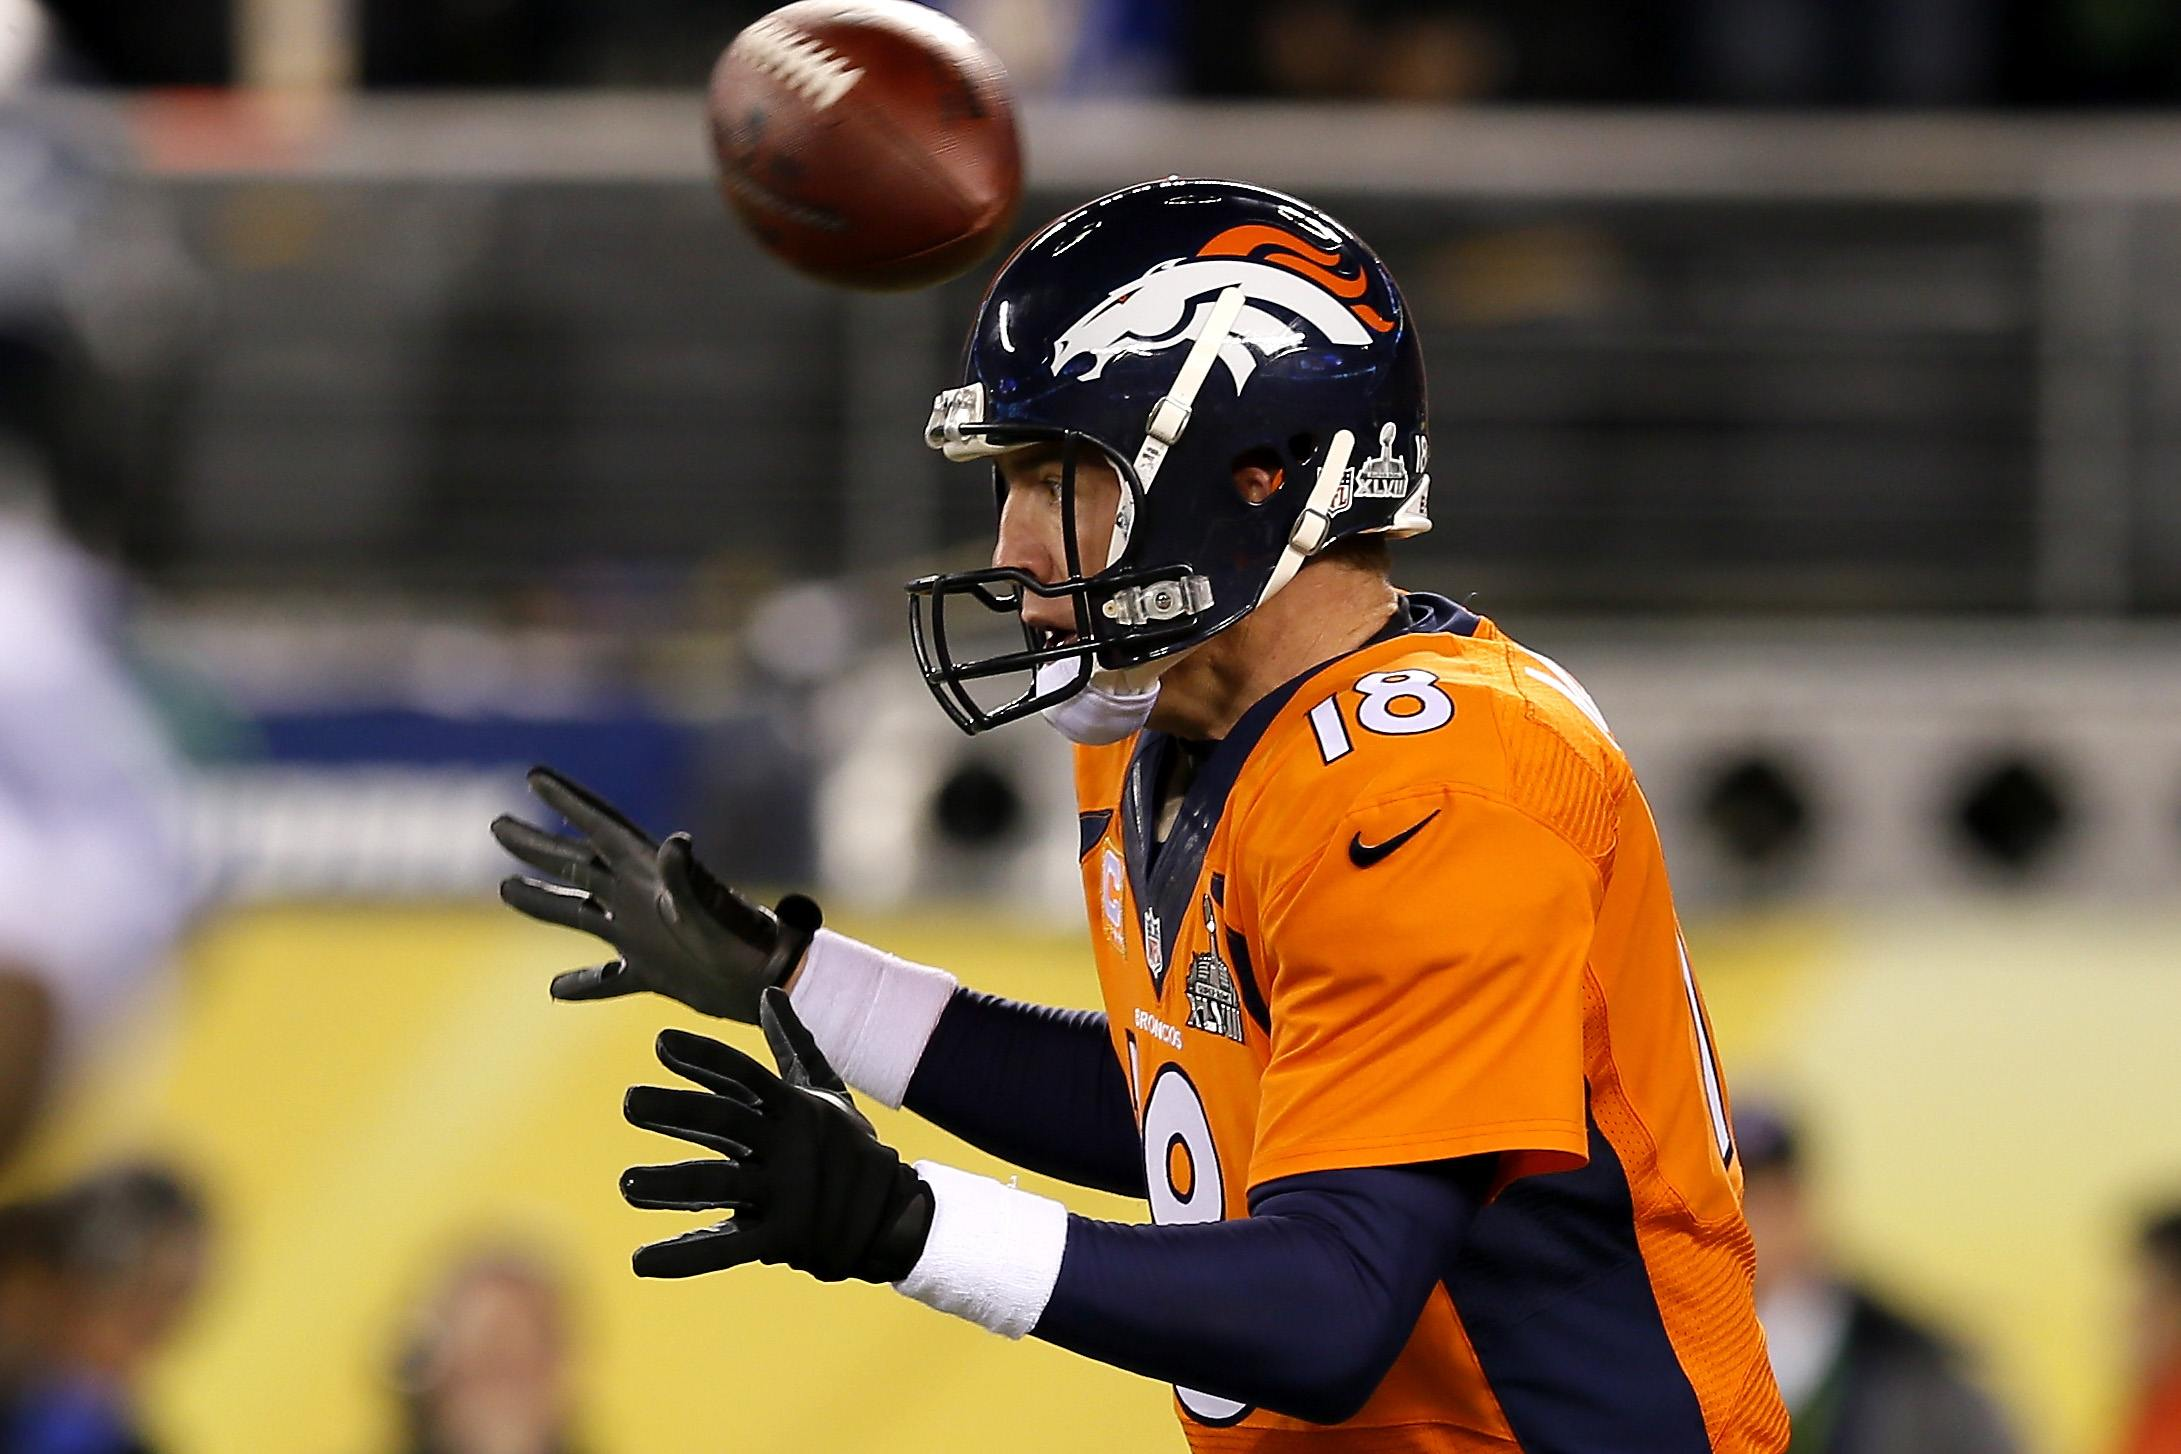 On the first play of Super Bowl XLVIII, the ball goes straight over Peyton Manning's head